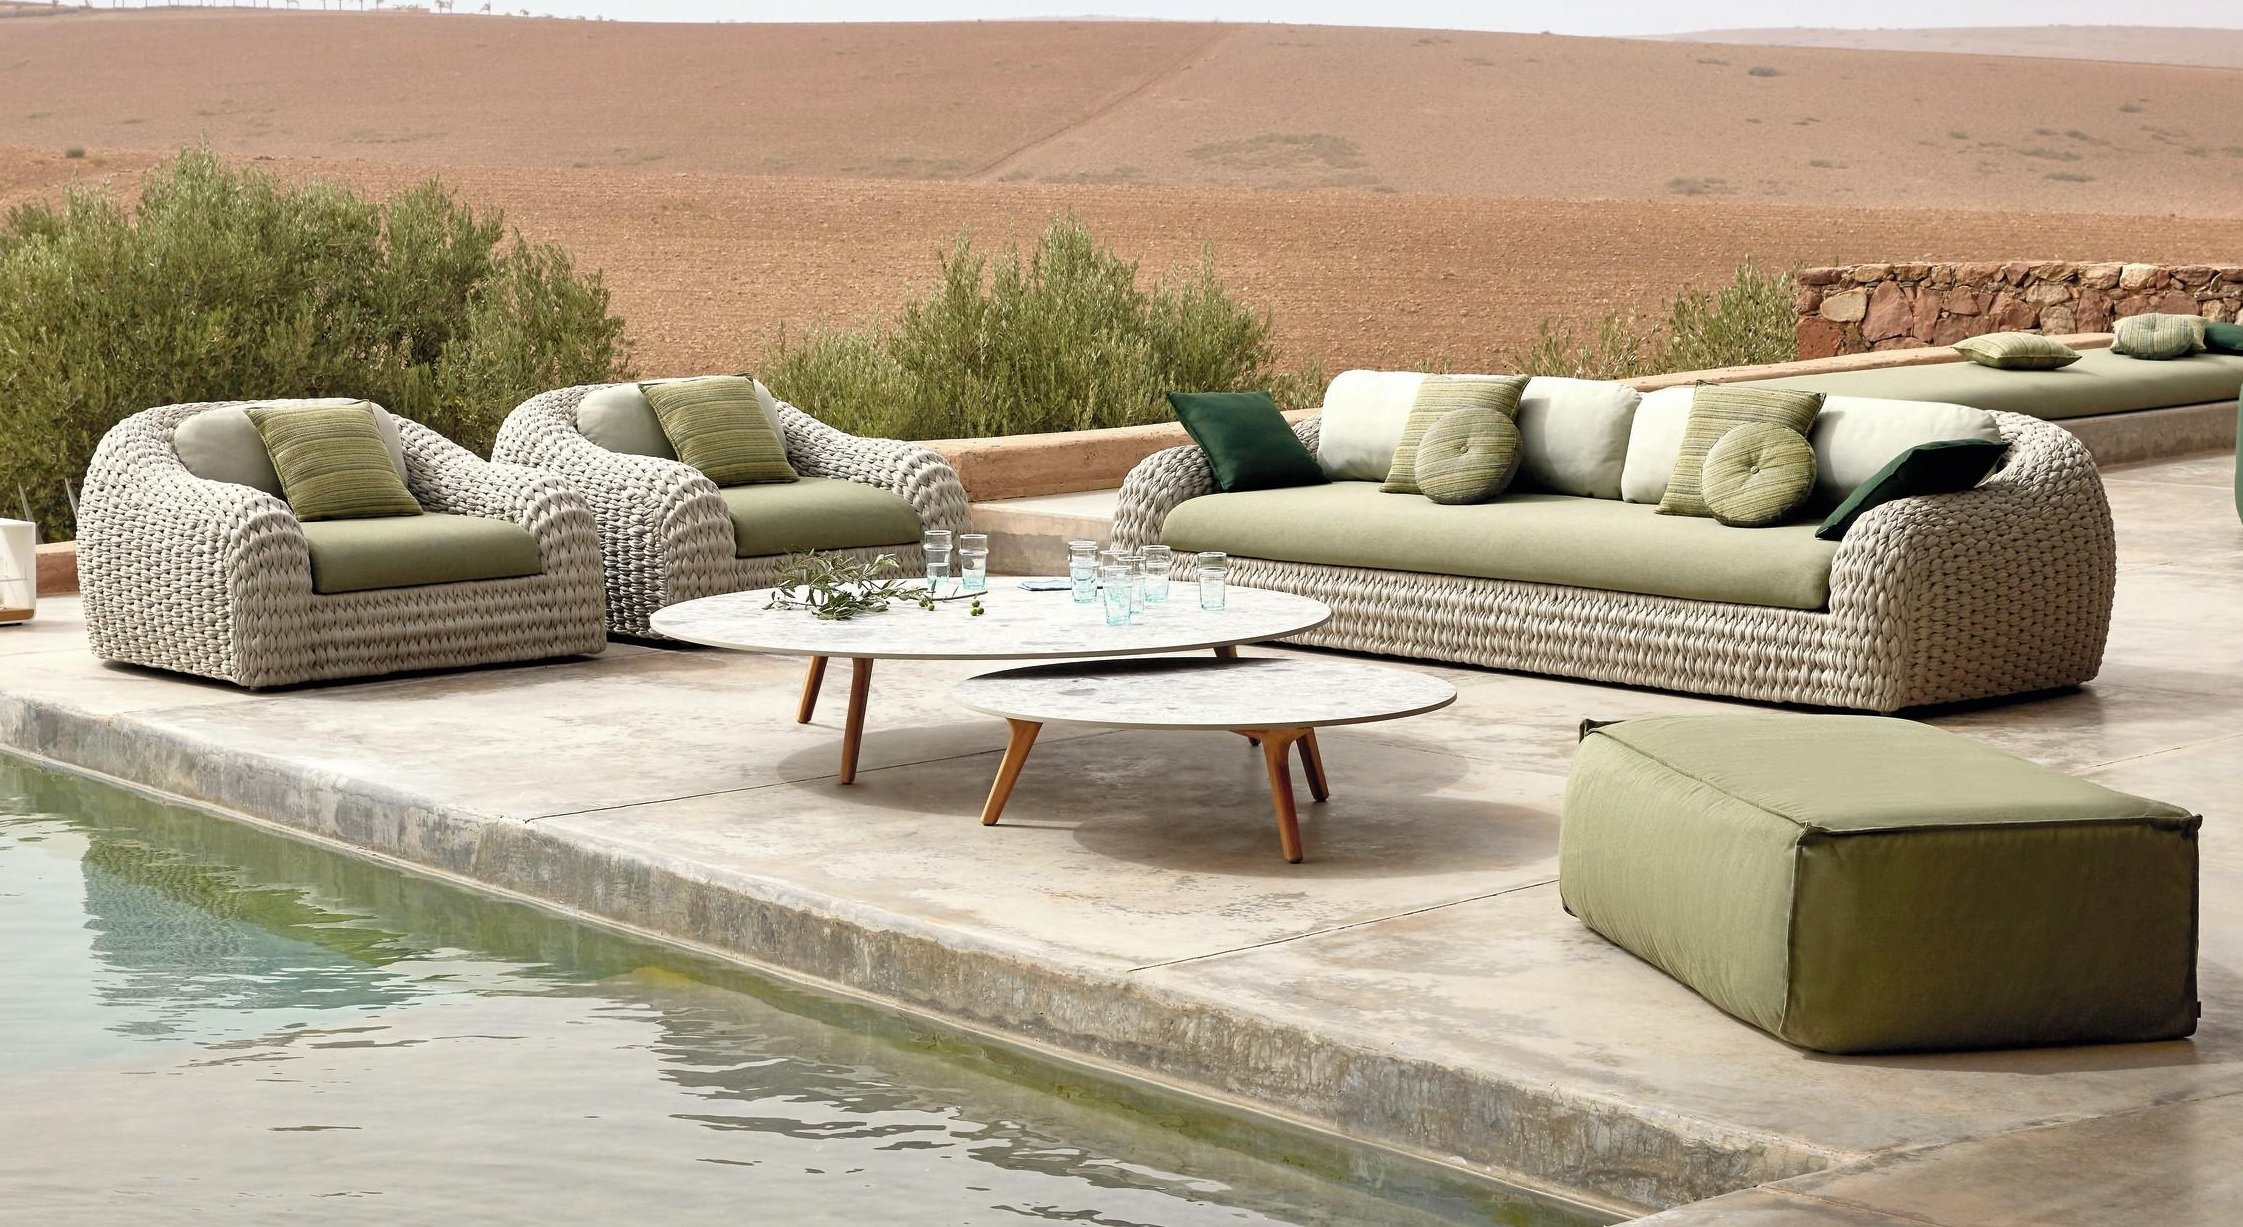 Kobo Sofa from Manutti, designed by Stephane De Winter